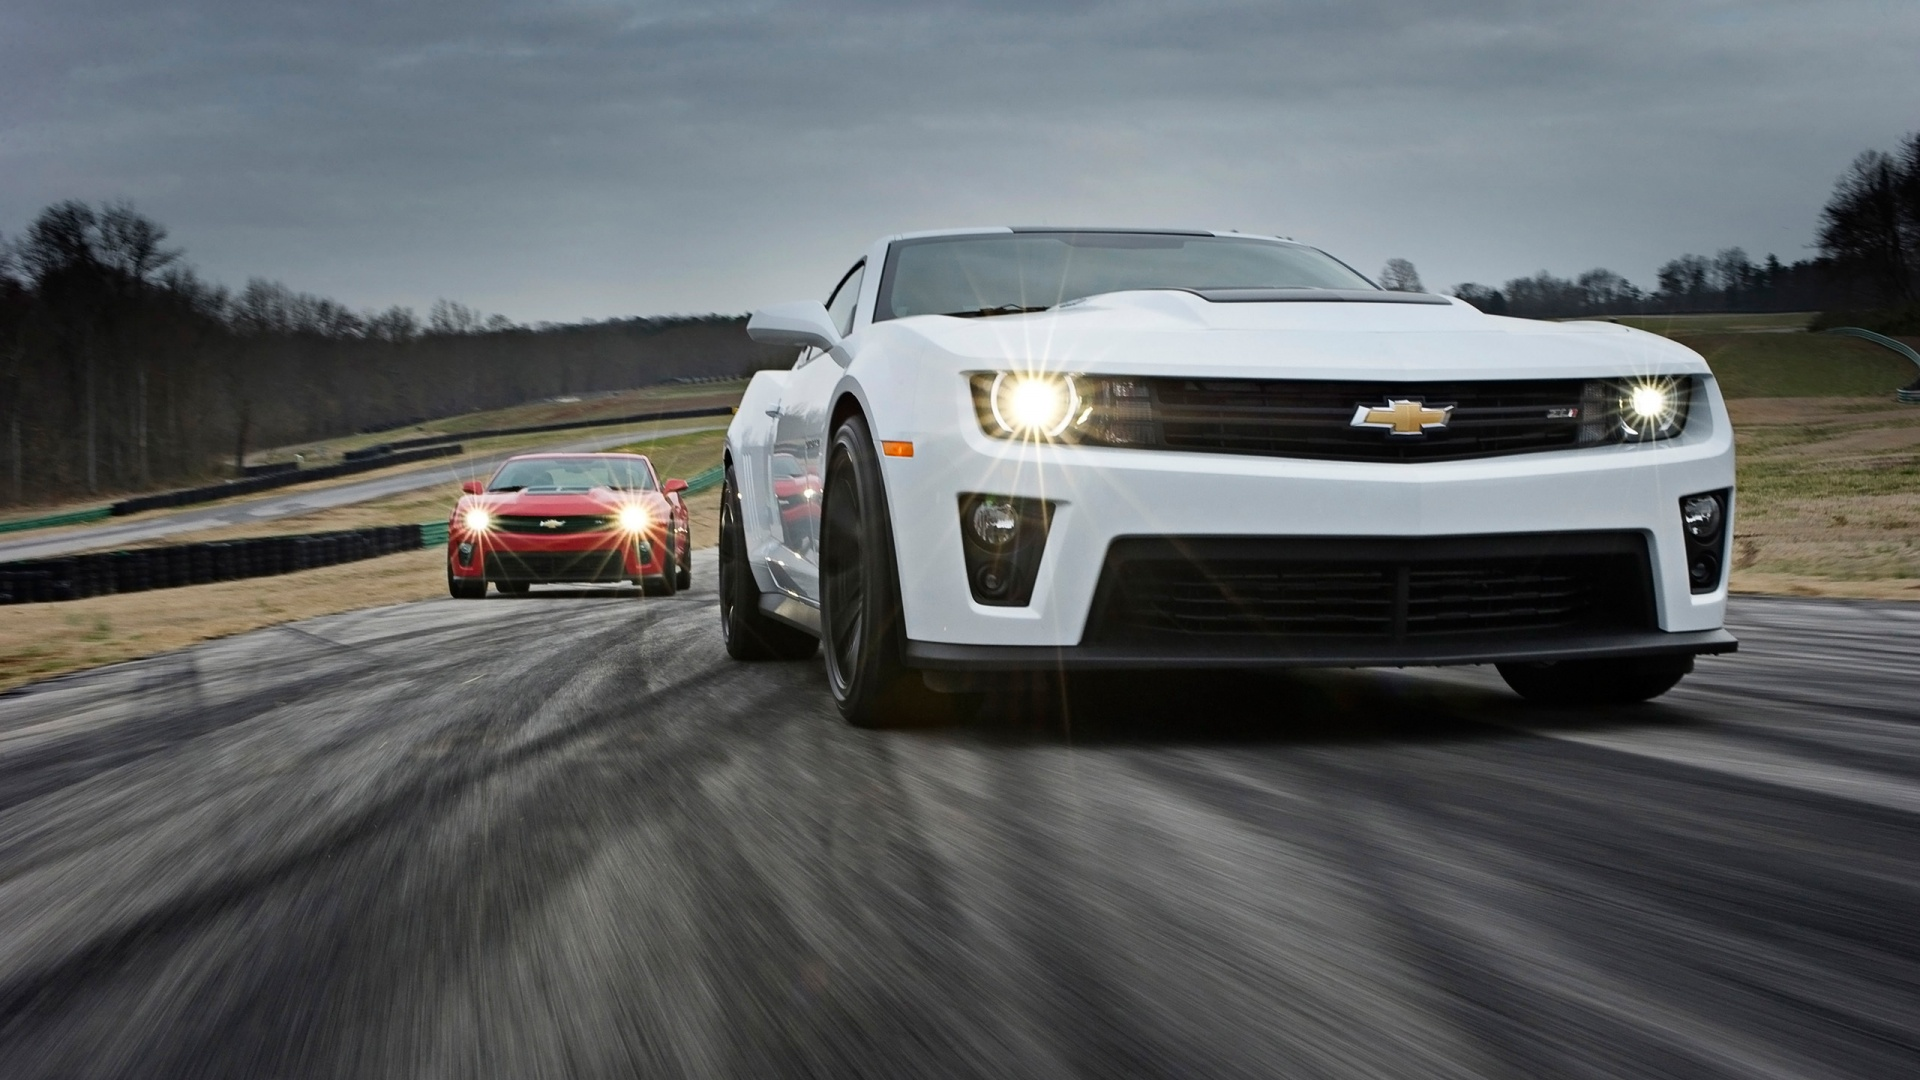 2014 Chevrolet Camaro ZL1 Wallpaper HD Car Wallpapers 1920x1080